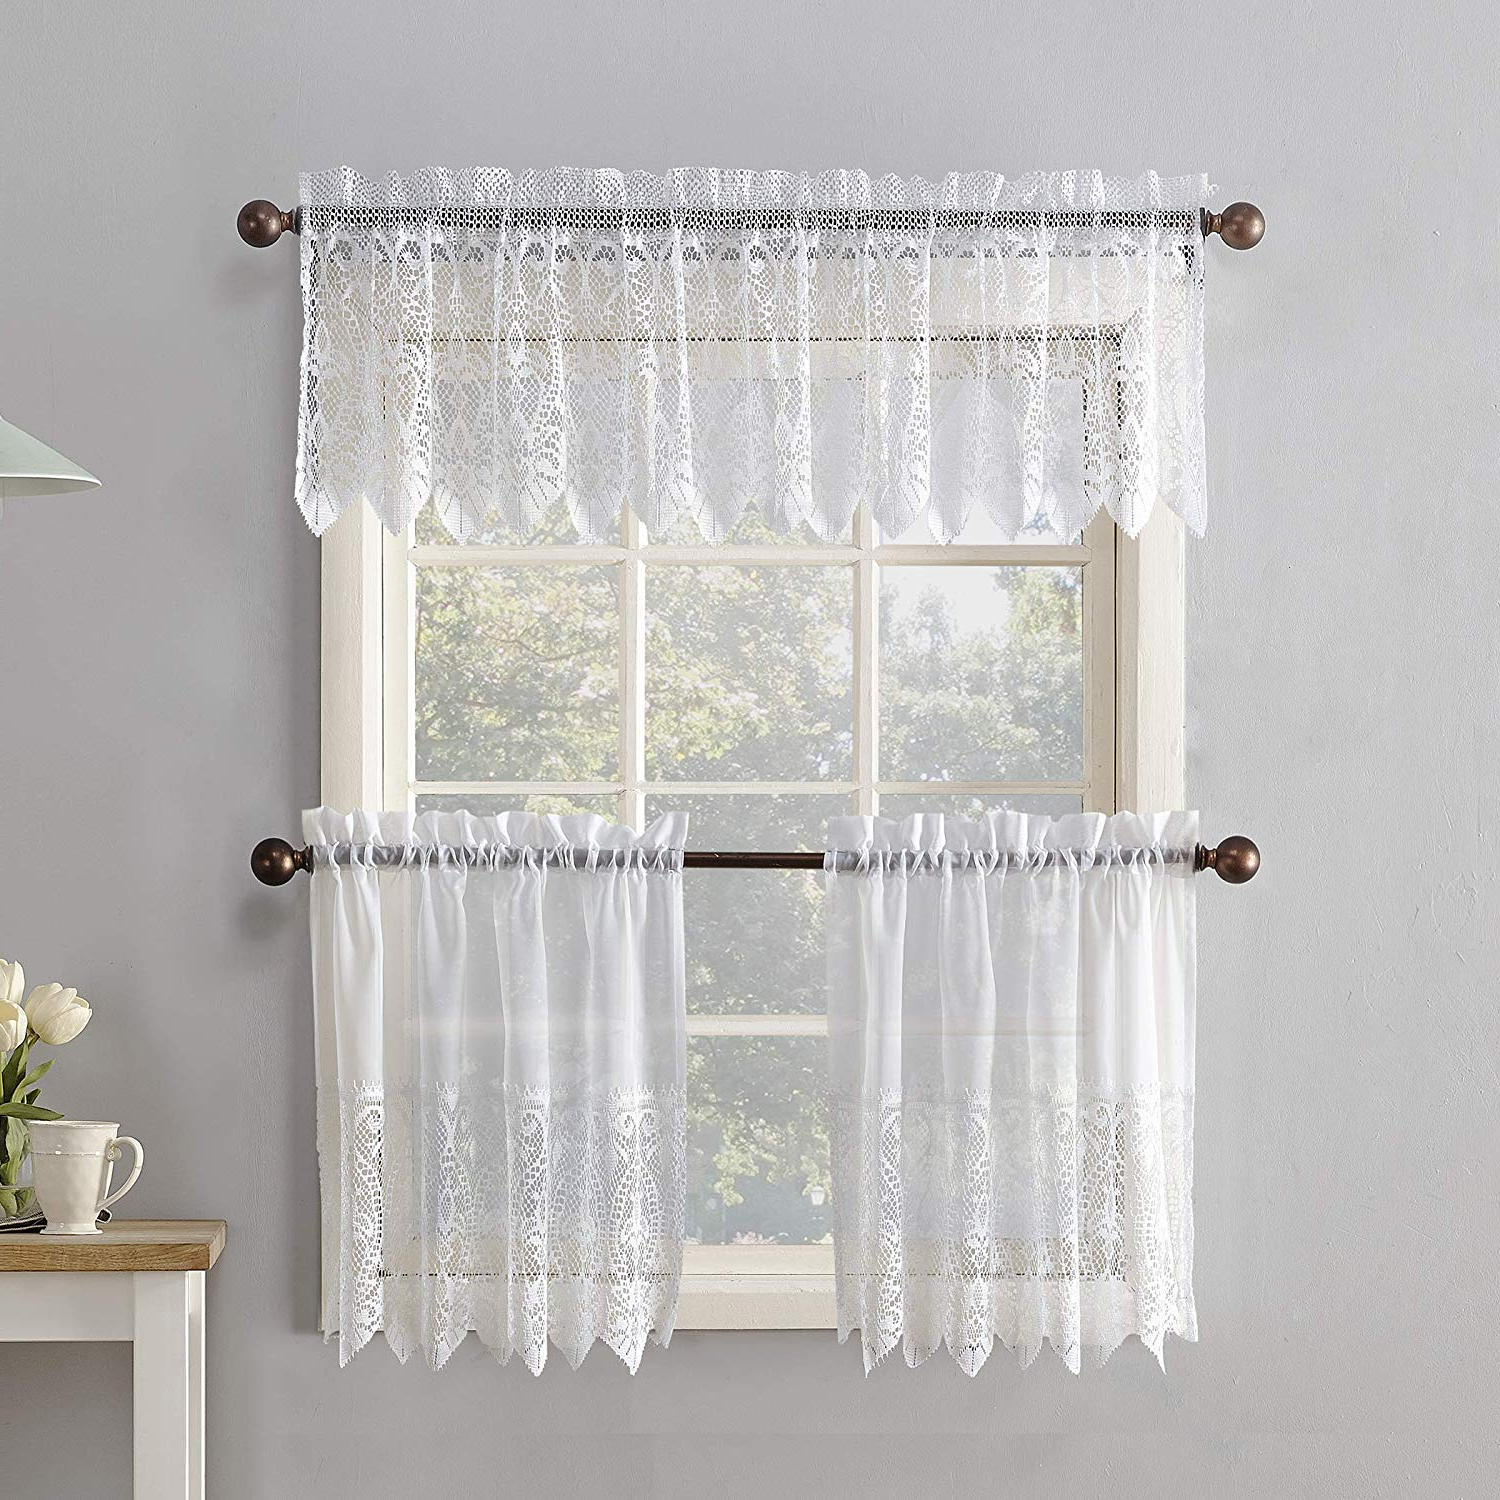 Well Liked Sheer Lace Elongated Kitchen Curtain Tier Pairs Inside No (View 7 of 20)